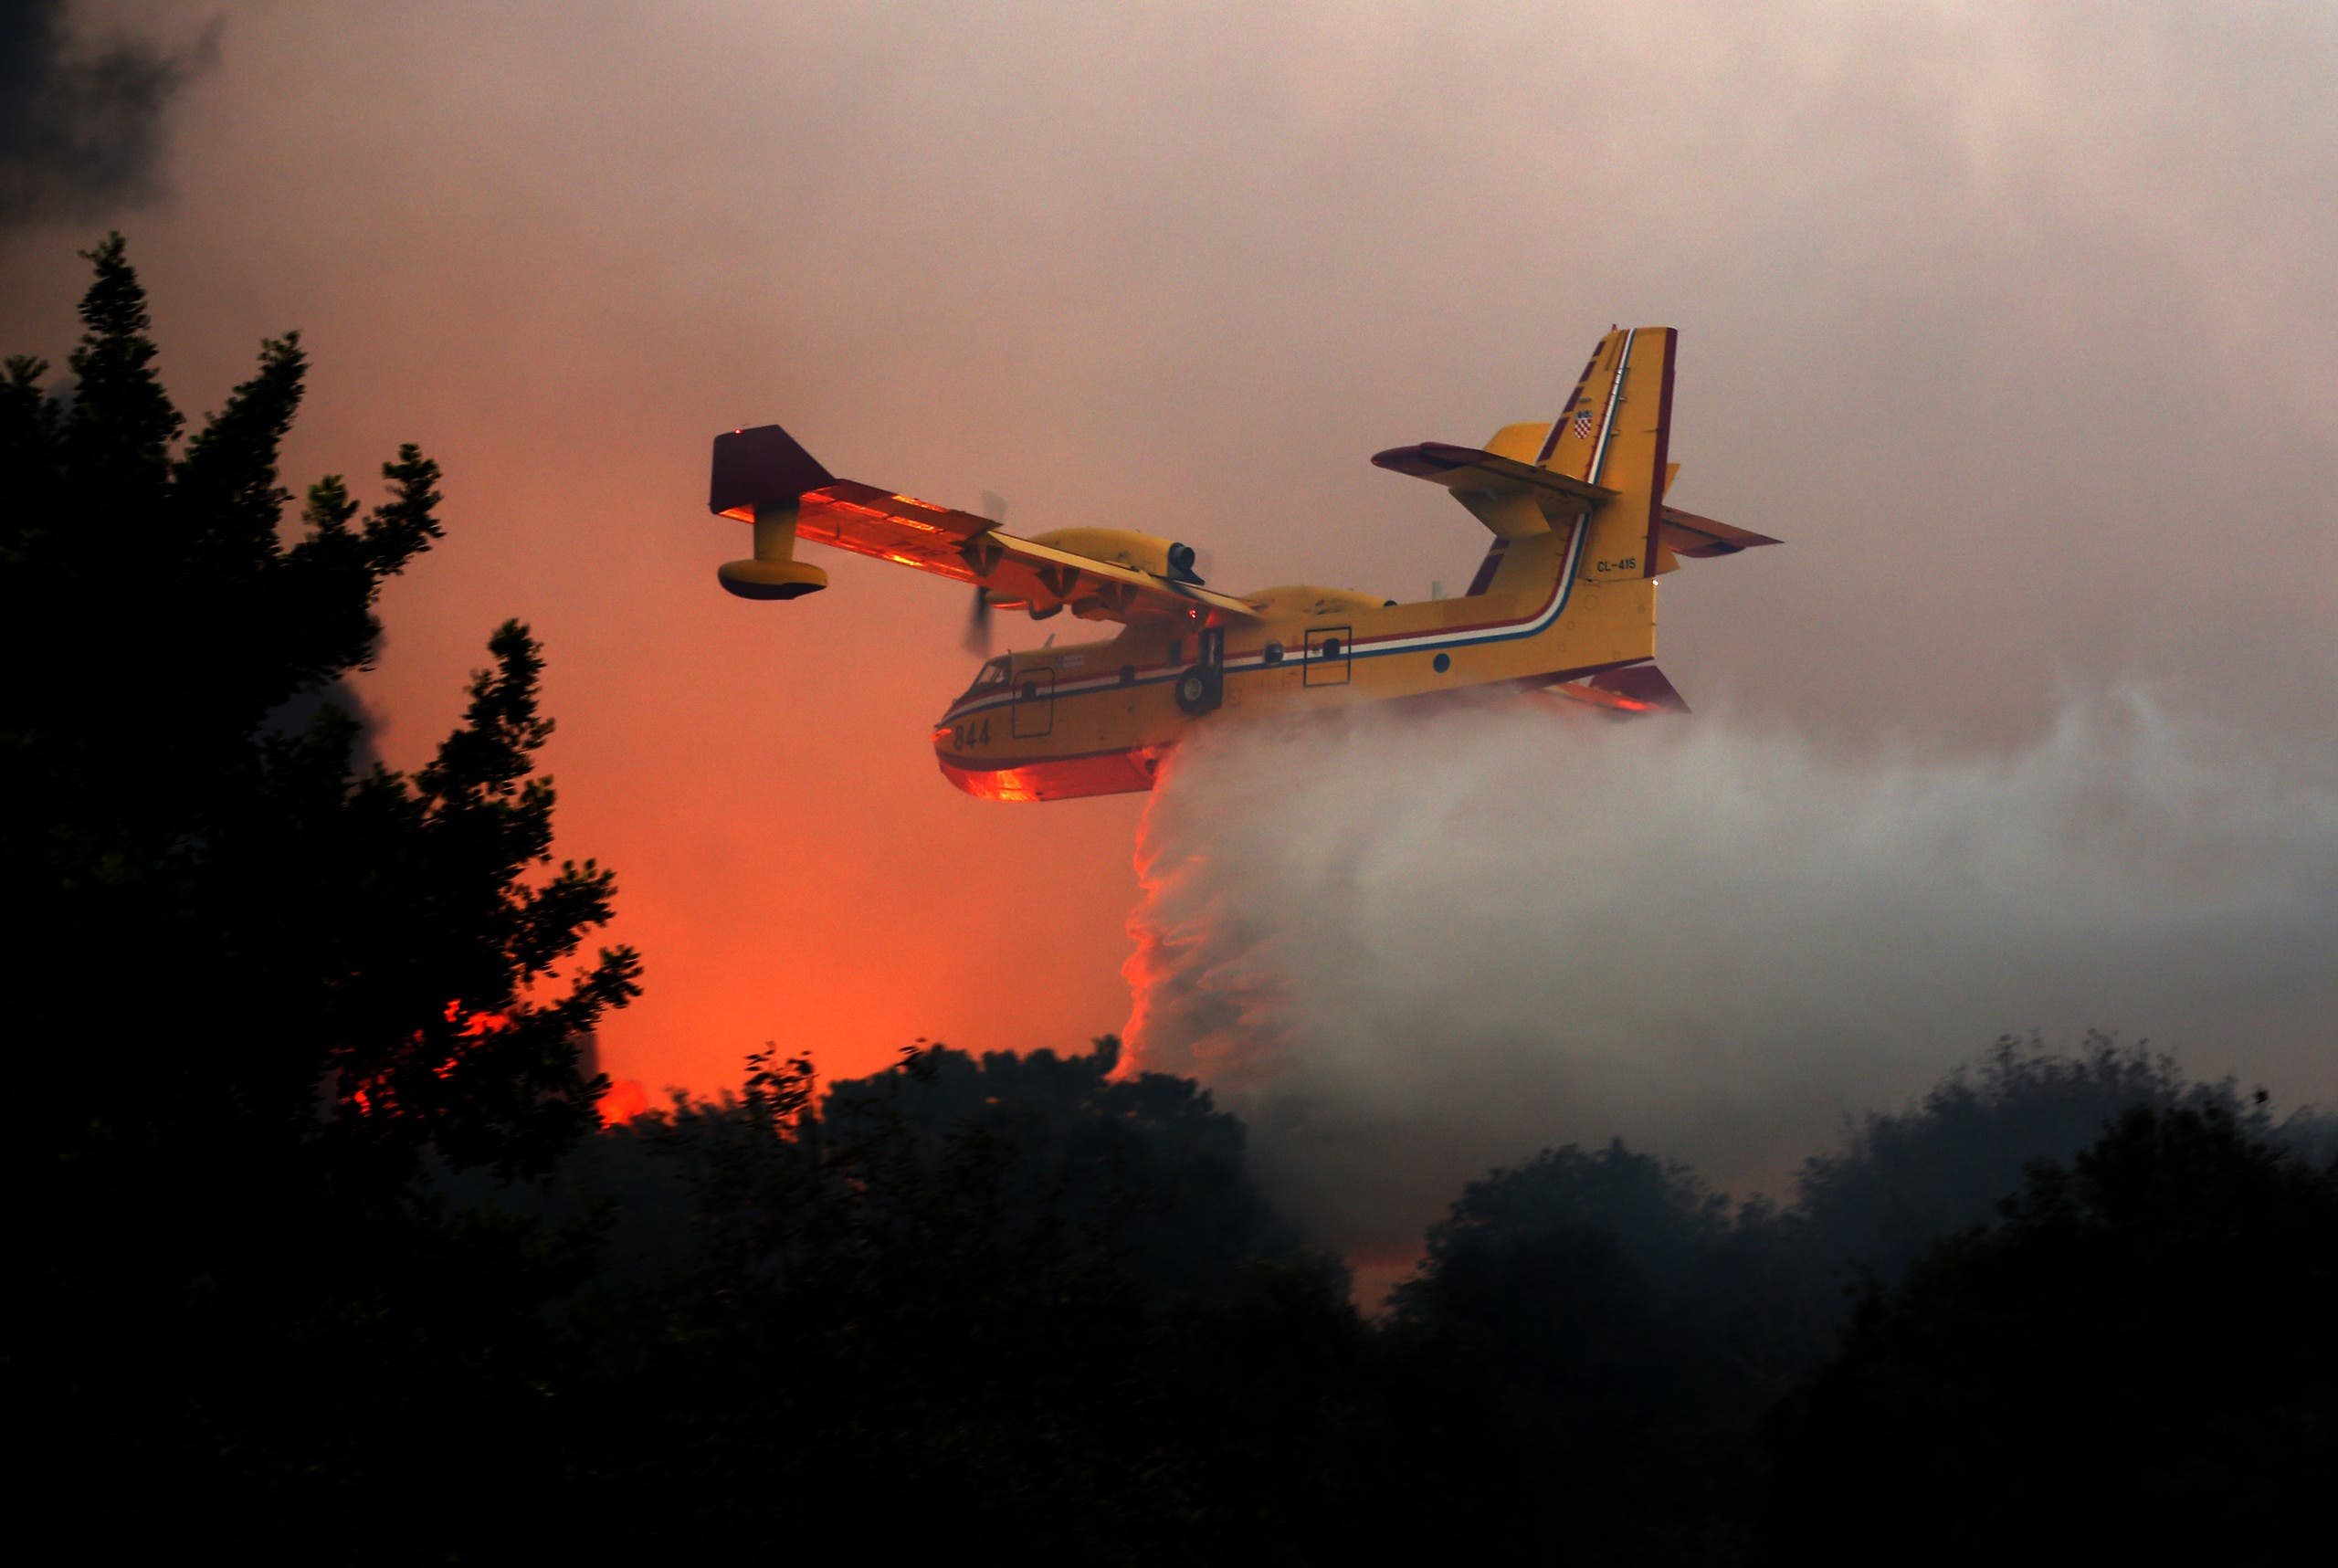 A Croatian firefighter plane helps extinguish a new fire that broke out in the Israeli town of Nataf, west of the Arab Israeli town of Abu Ghosh, along the border with the occupied West Bank on November 25, 2016. (AFP)